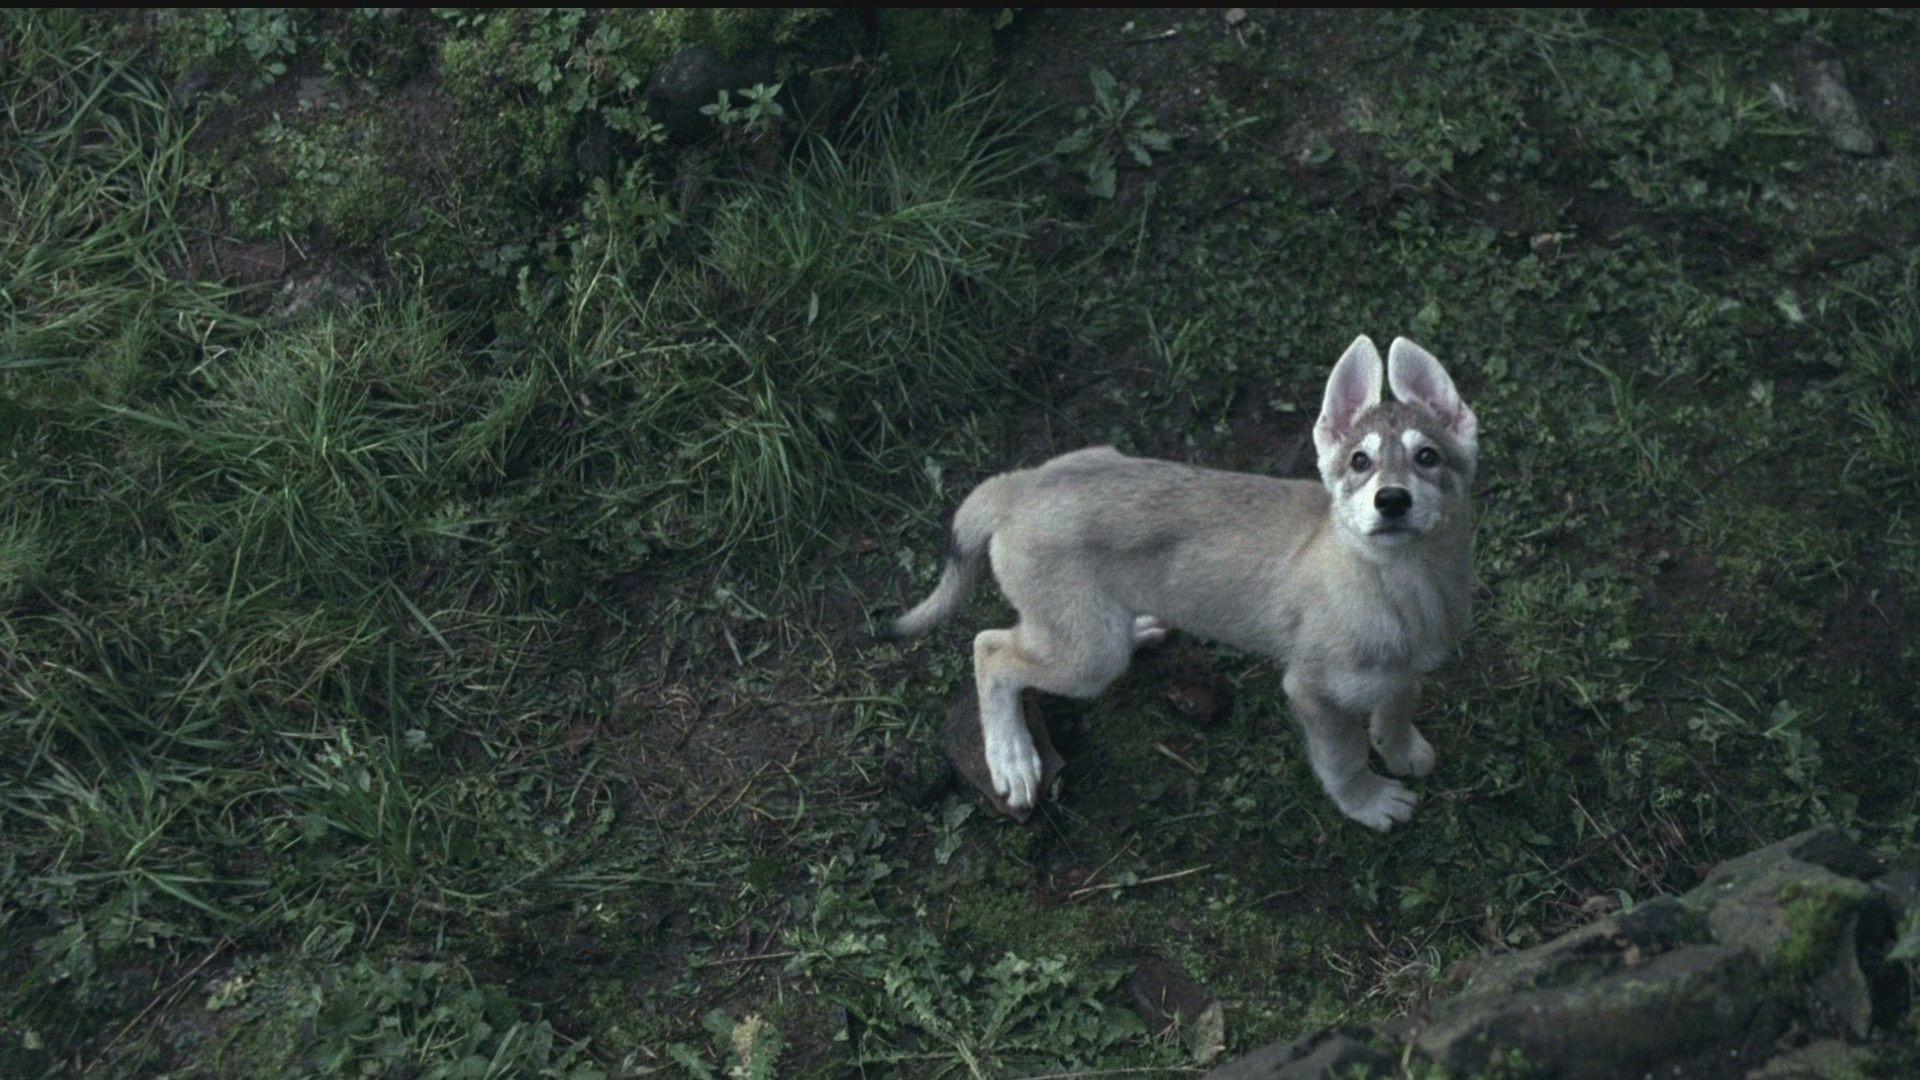 Game Of Thrones Direwolf Pup Northern Inuit Dog Dire Wolf